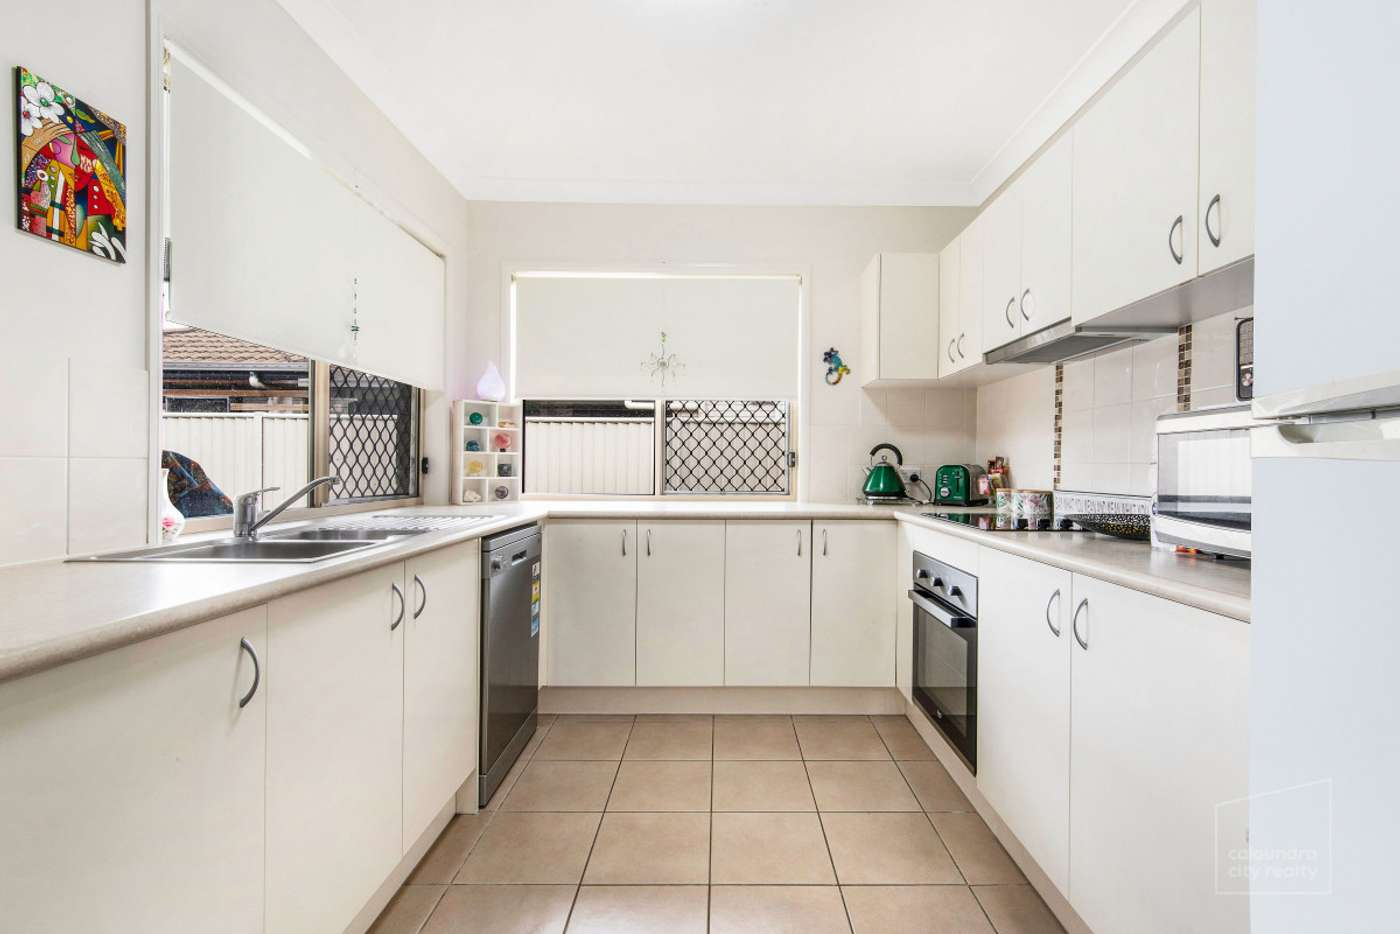 Seventh view of Homely house listing, 15 Gipps Street, Caloundra West QLD 4551